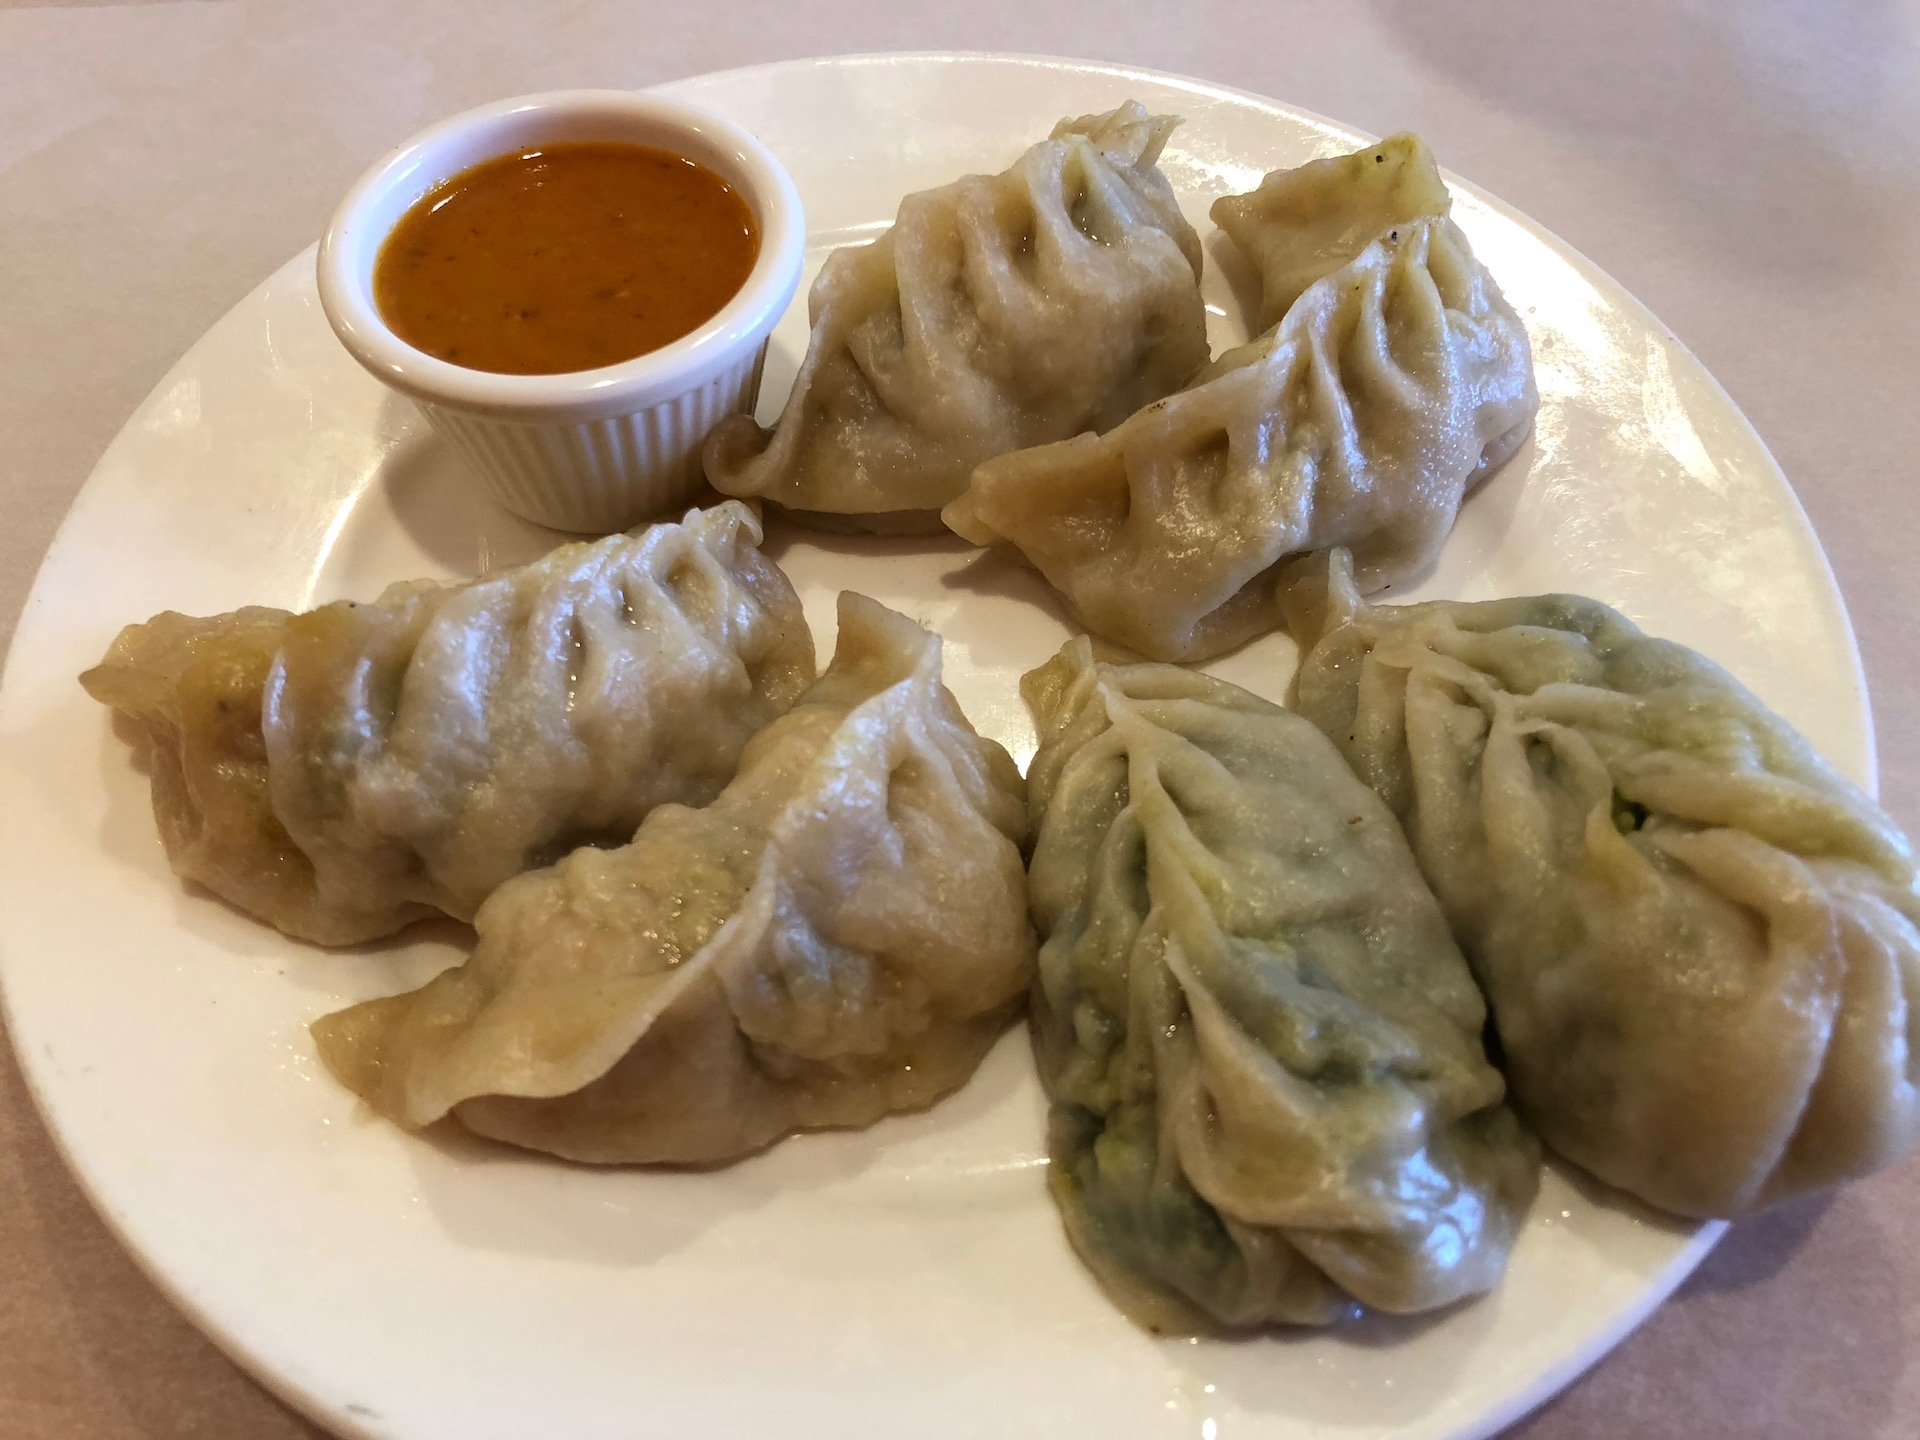 Cuisine of Nepal's excellent momos come six to an order